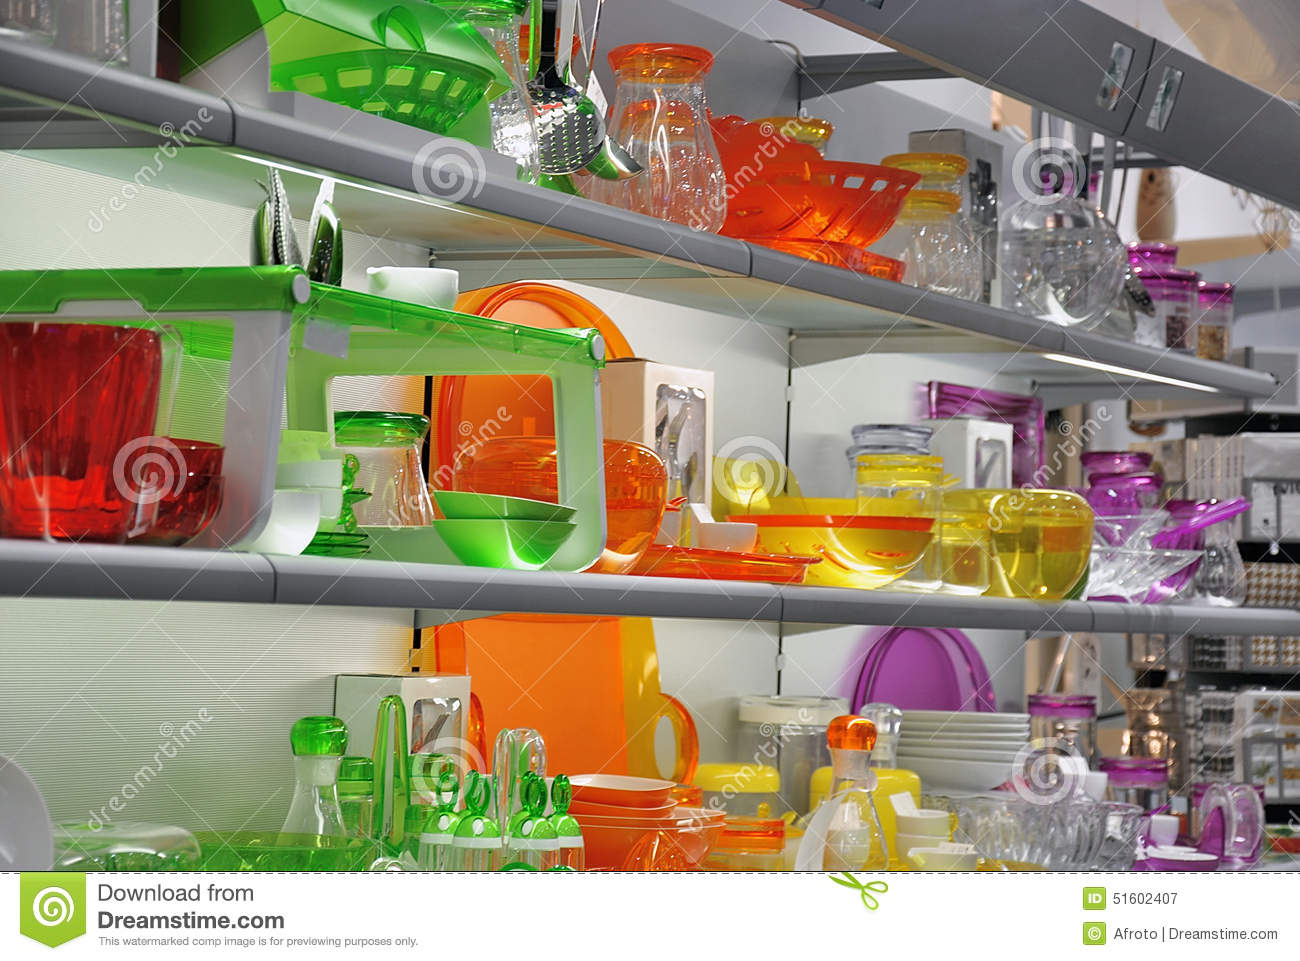 Colorful Kitchenware Store Stock Photo Image 51602407